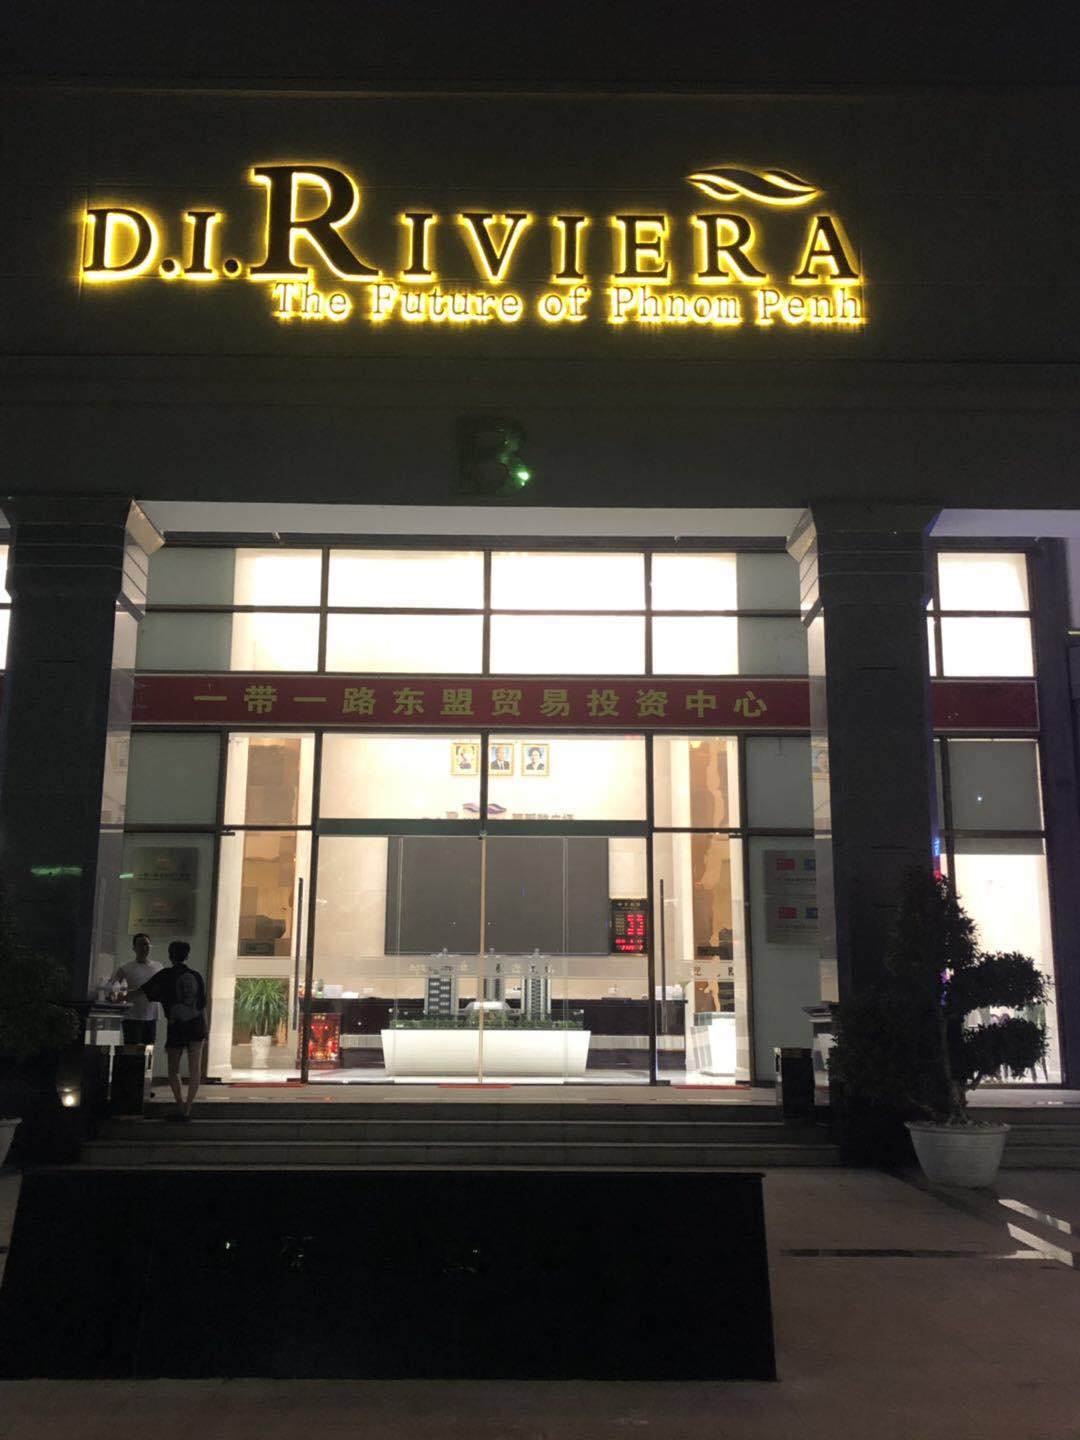 D.I.Riviera International Hotel, Mean Chey